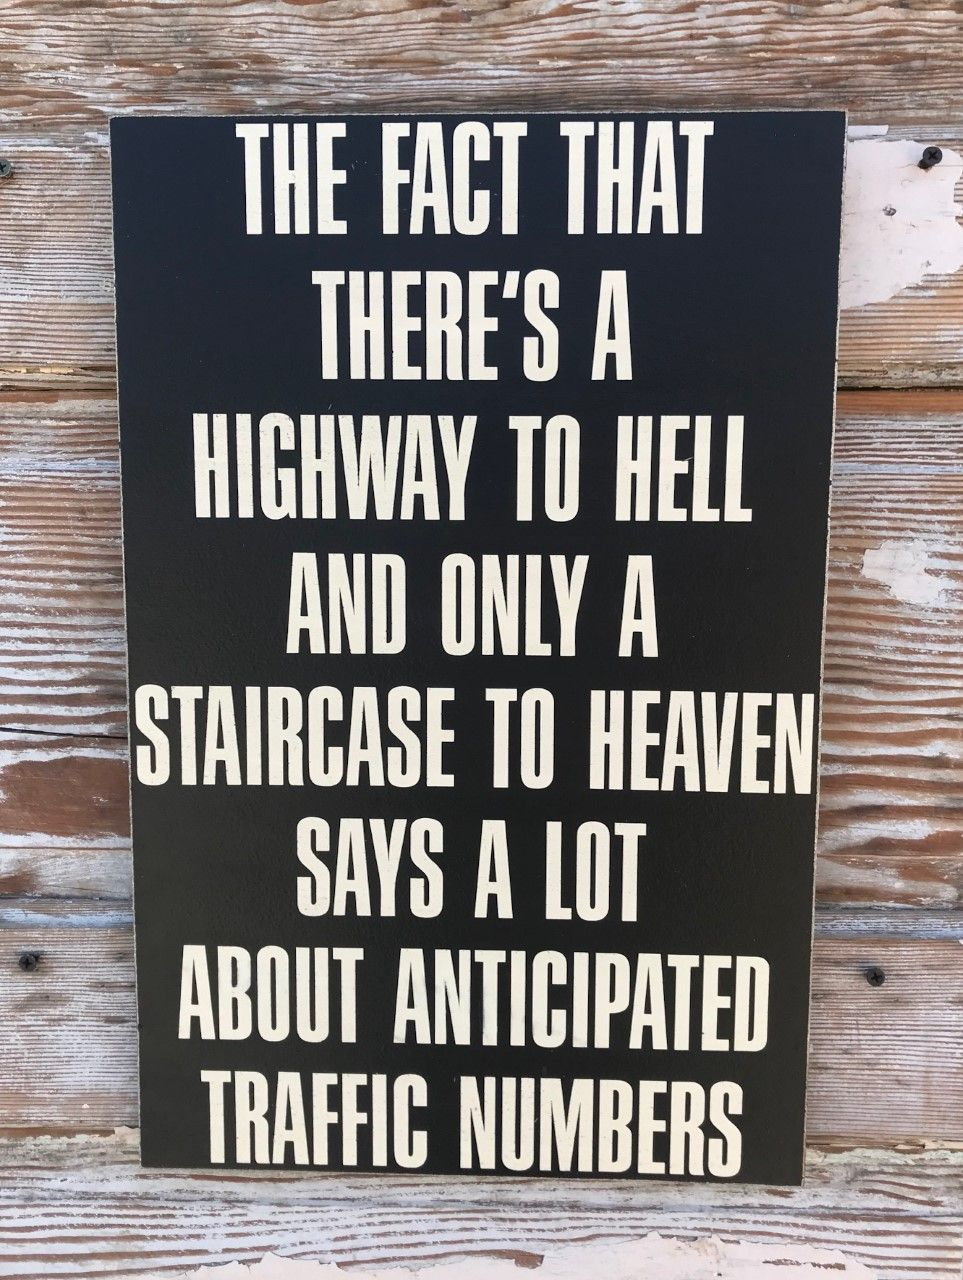 The Fact That There's A Highway To Hell And Only A Staircase To Heaven Says A Lot About Anticipated Traffic Numbers. Wood Sign